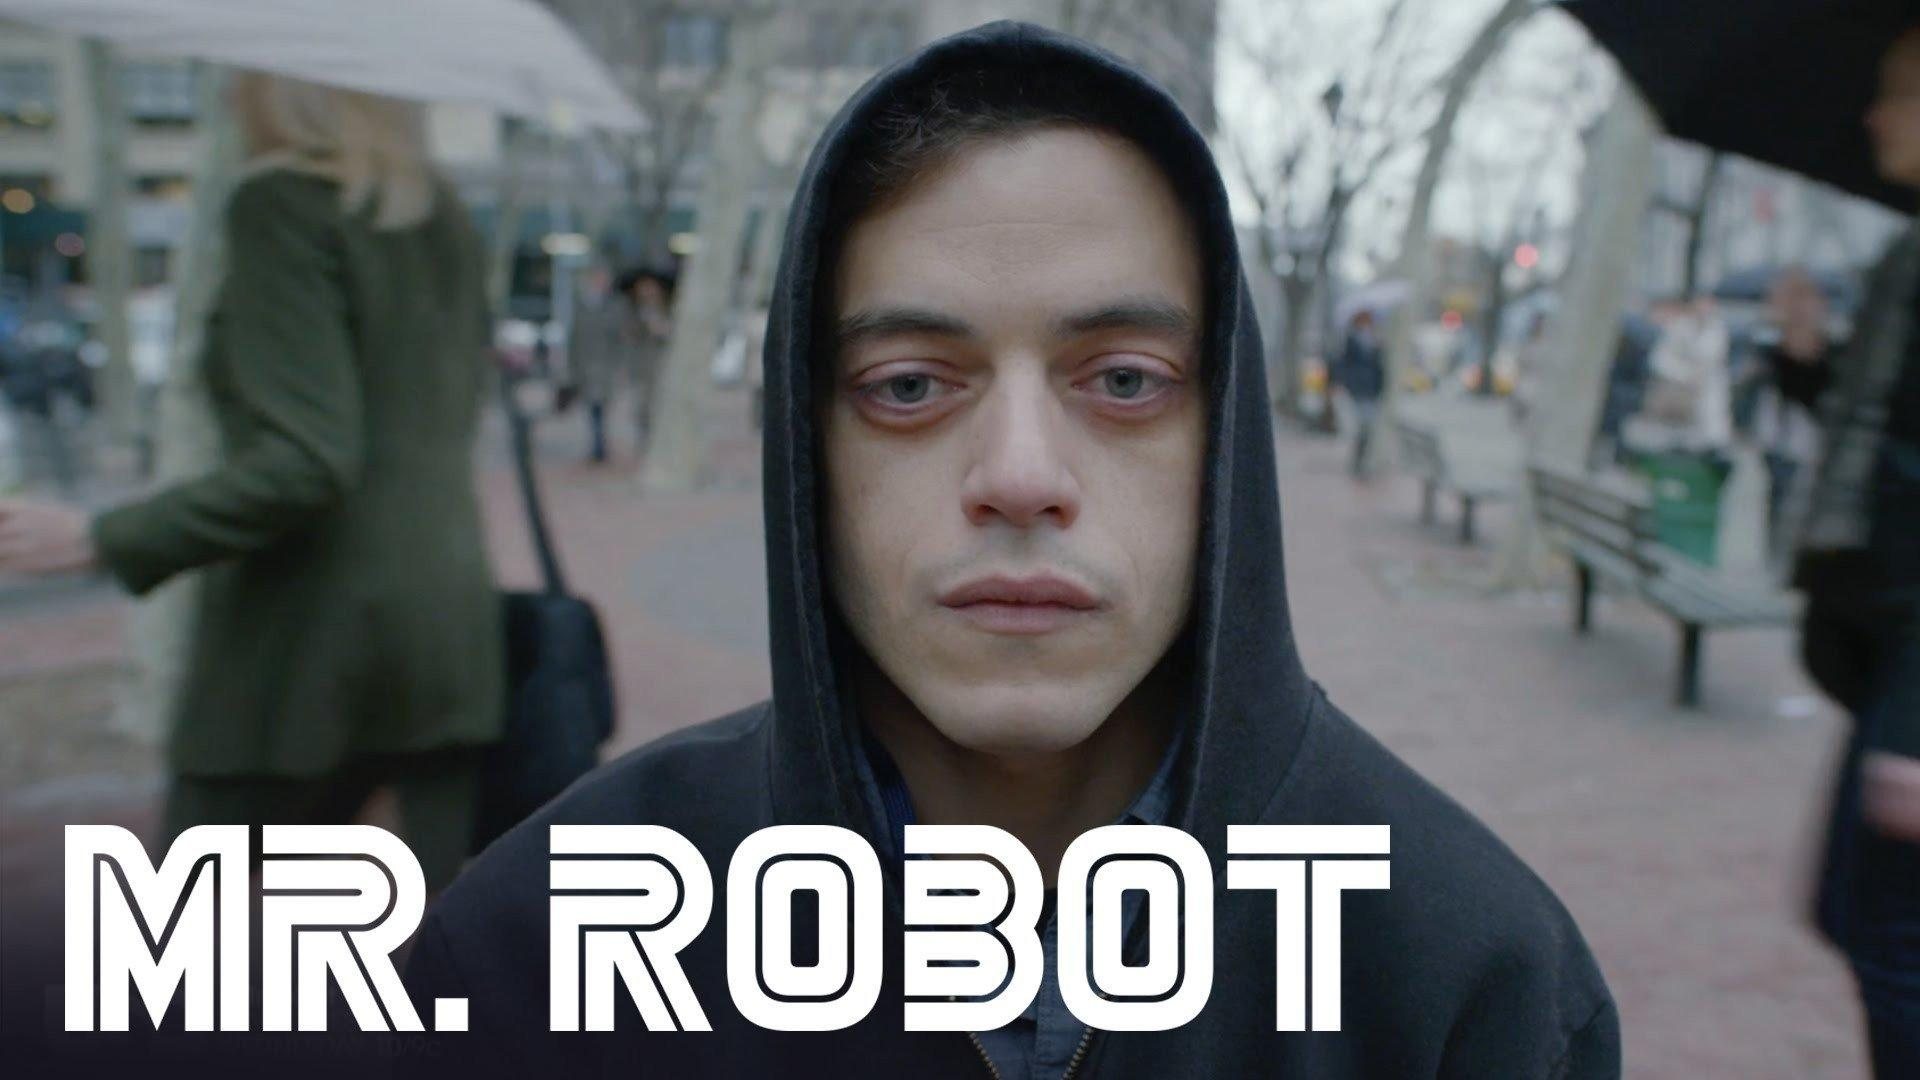 Mr. Robot wallpapers HD quality